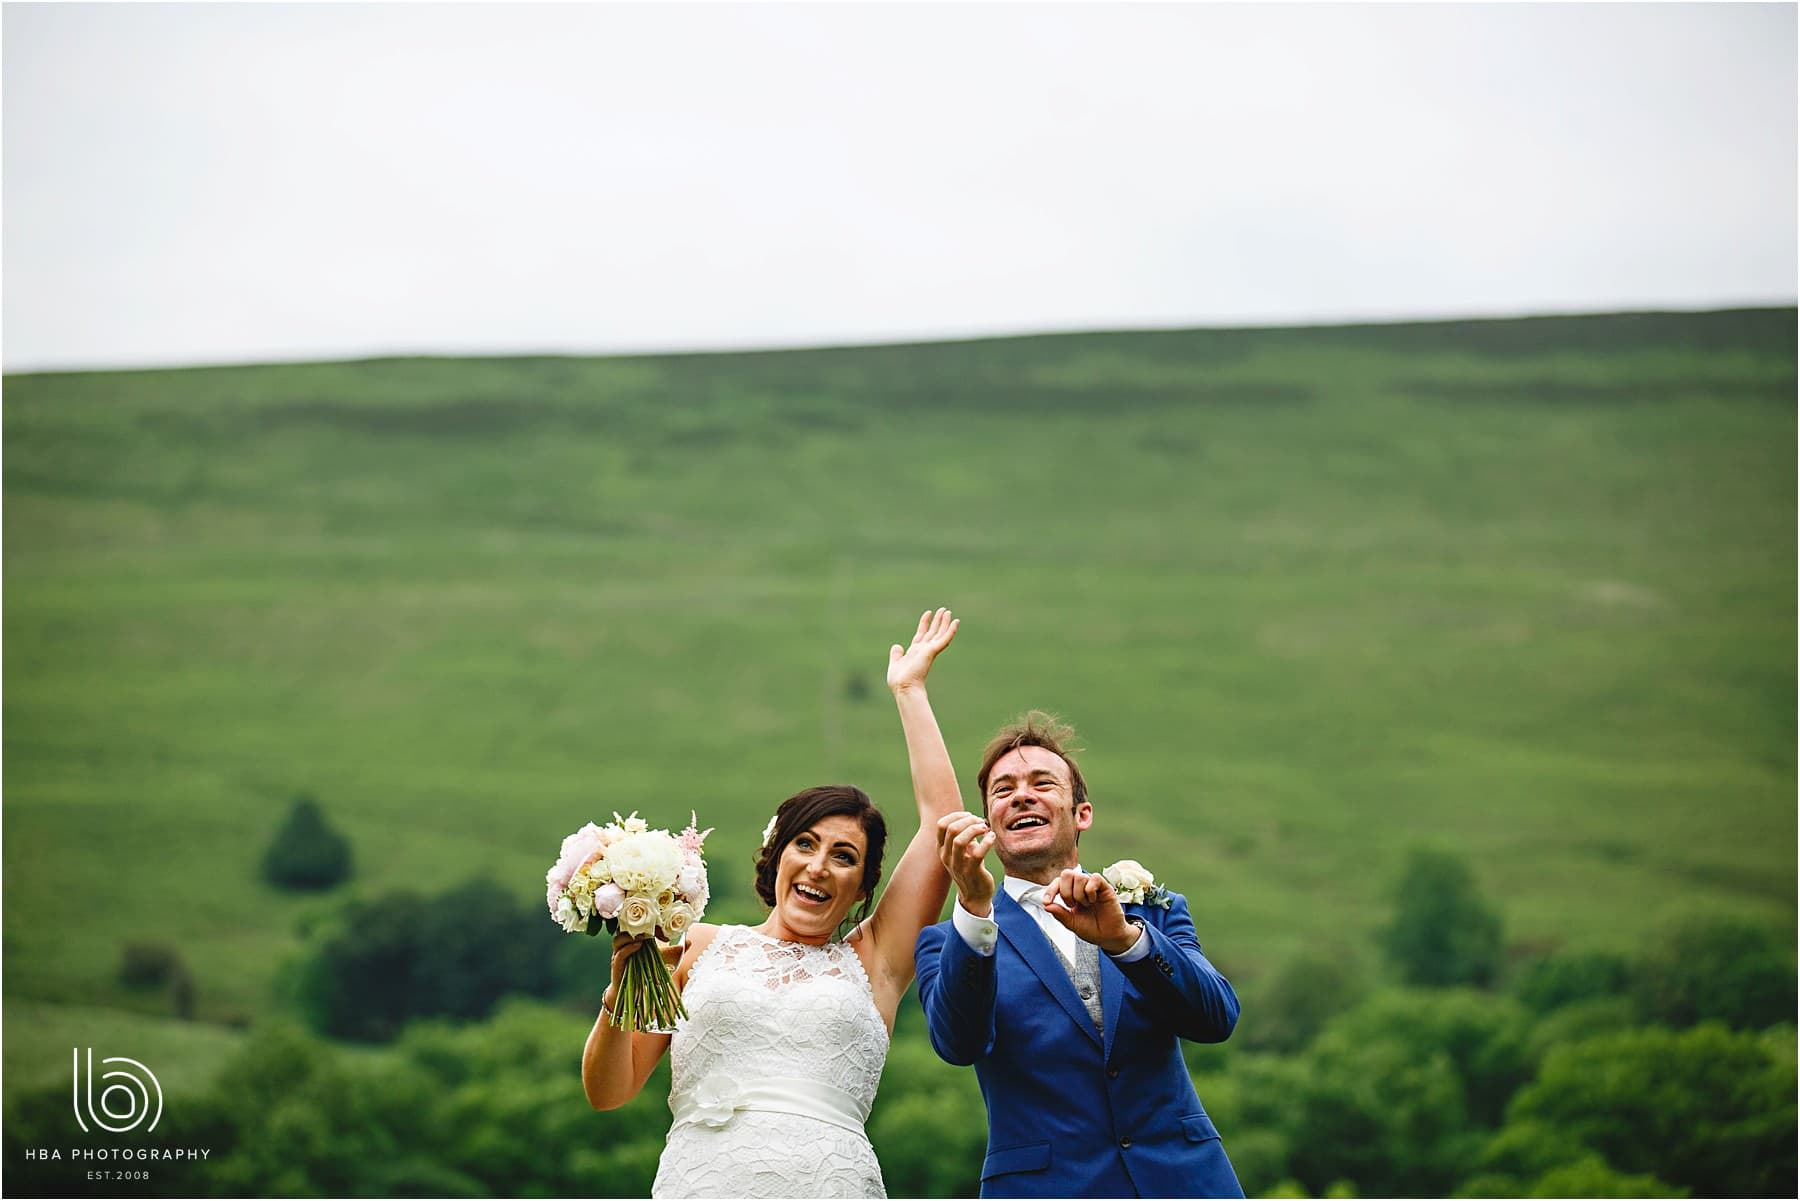 the bride and groom outisde waving at their guests